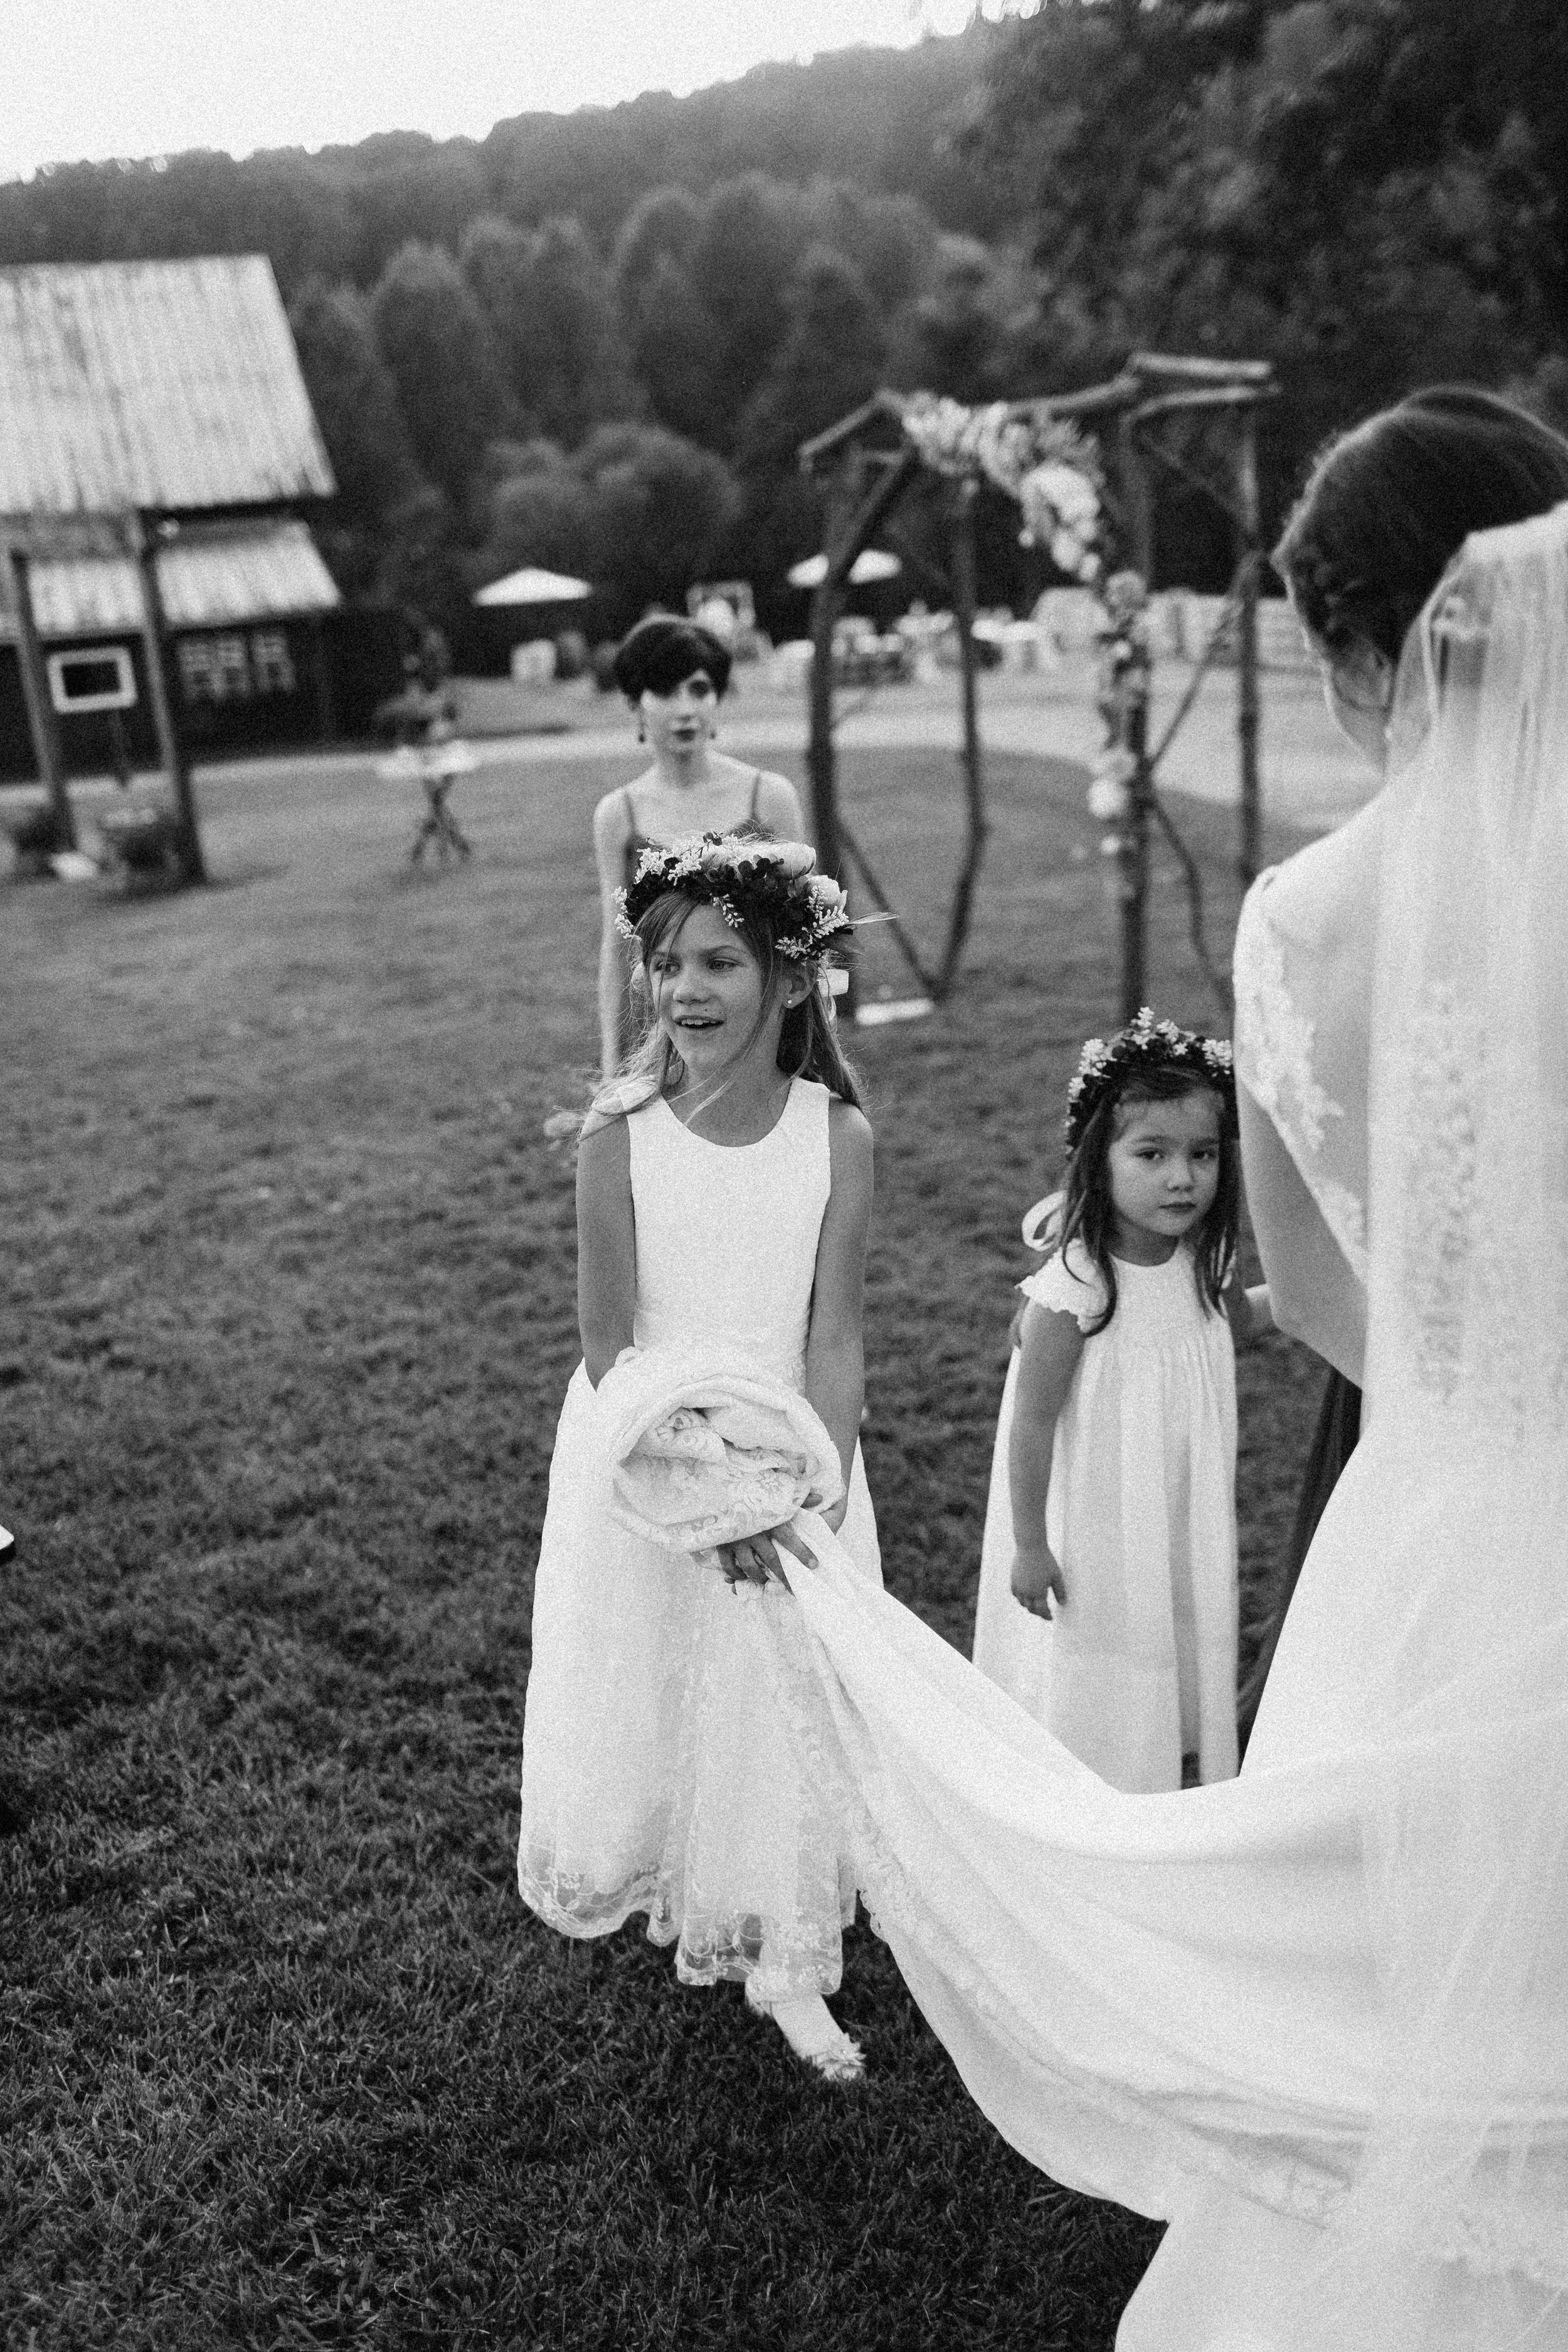 cleveland_georgia_mountain_laurel_farm_natural_classic_timeless_documentary_candid_wedding_emotional_photojournalism_river_west_1742.jpg